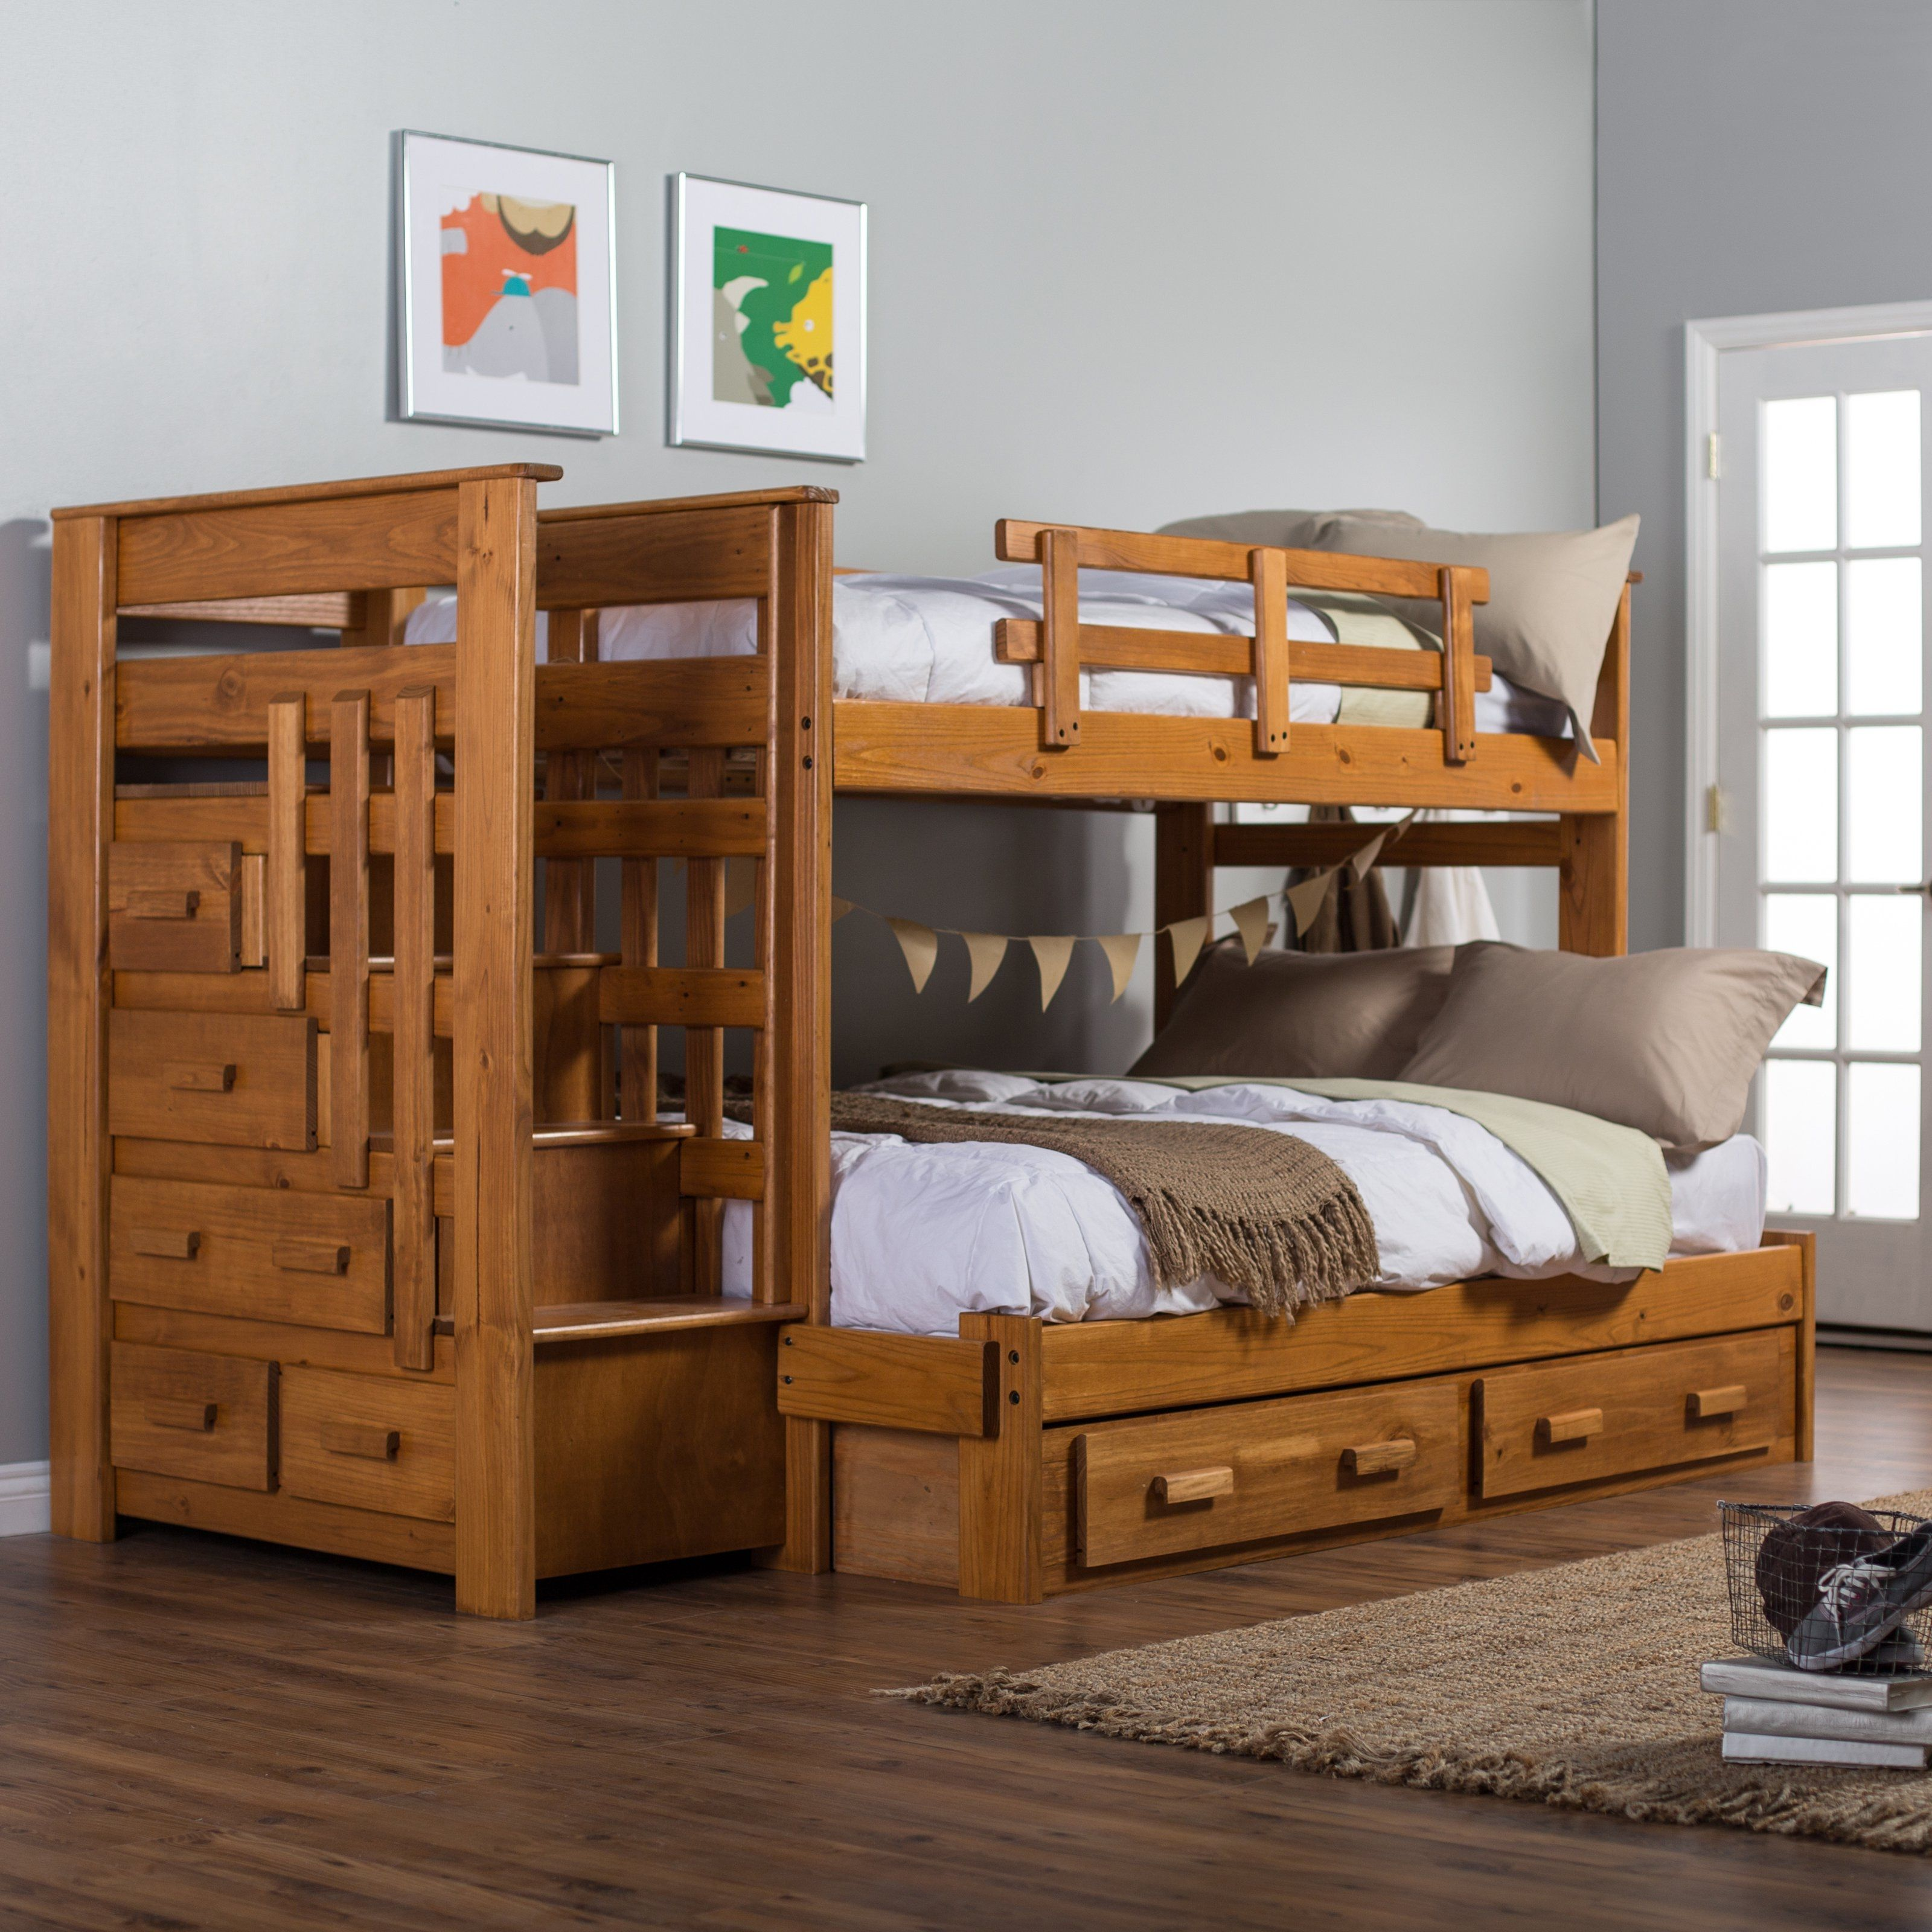 Twin Over Full Bunk Bed With Stairway Storage Drawers | http ...